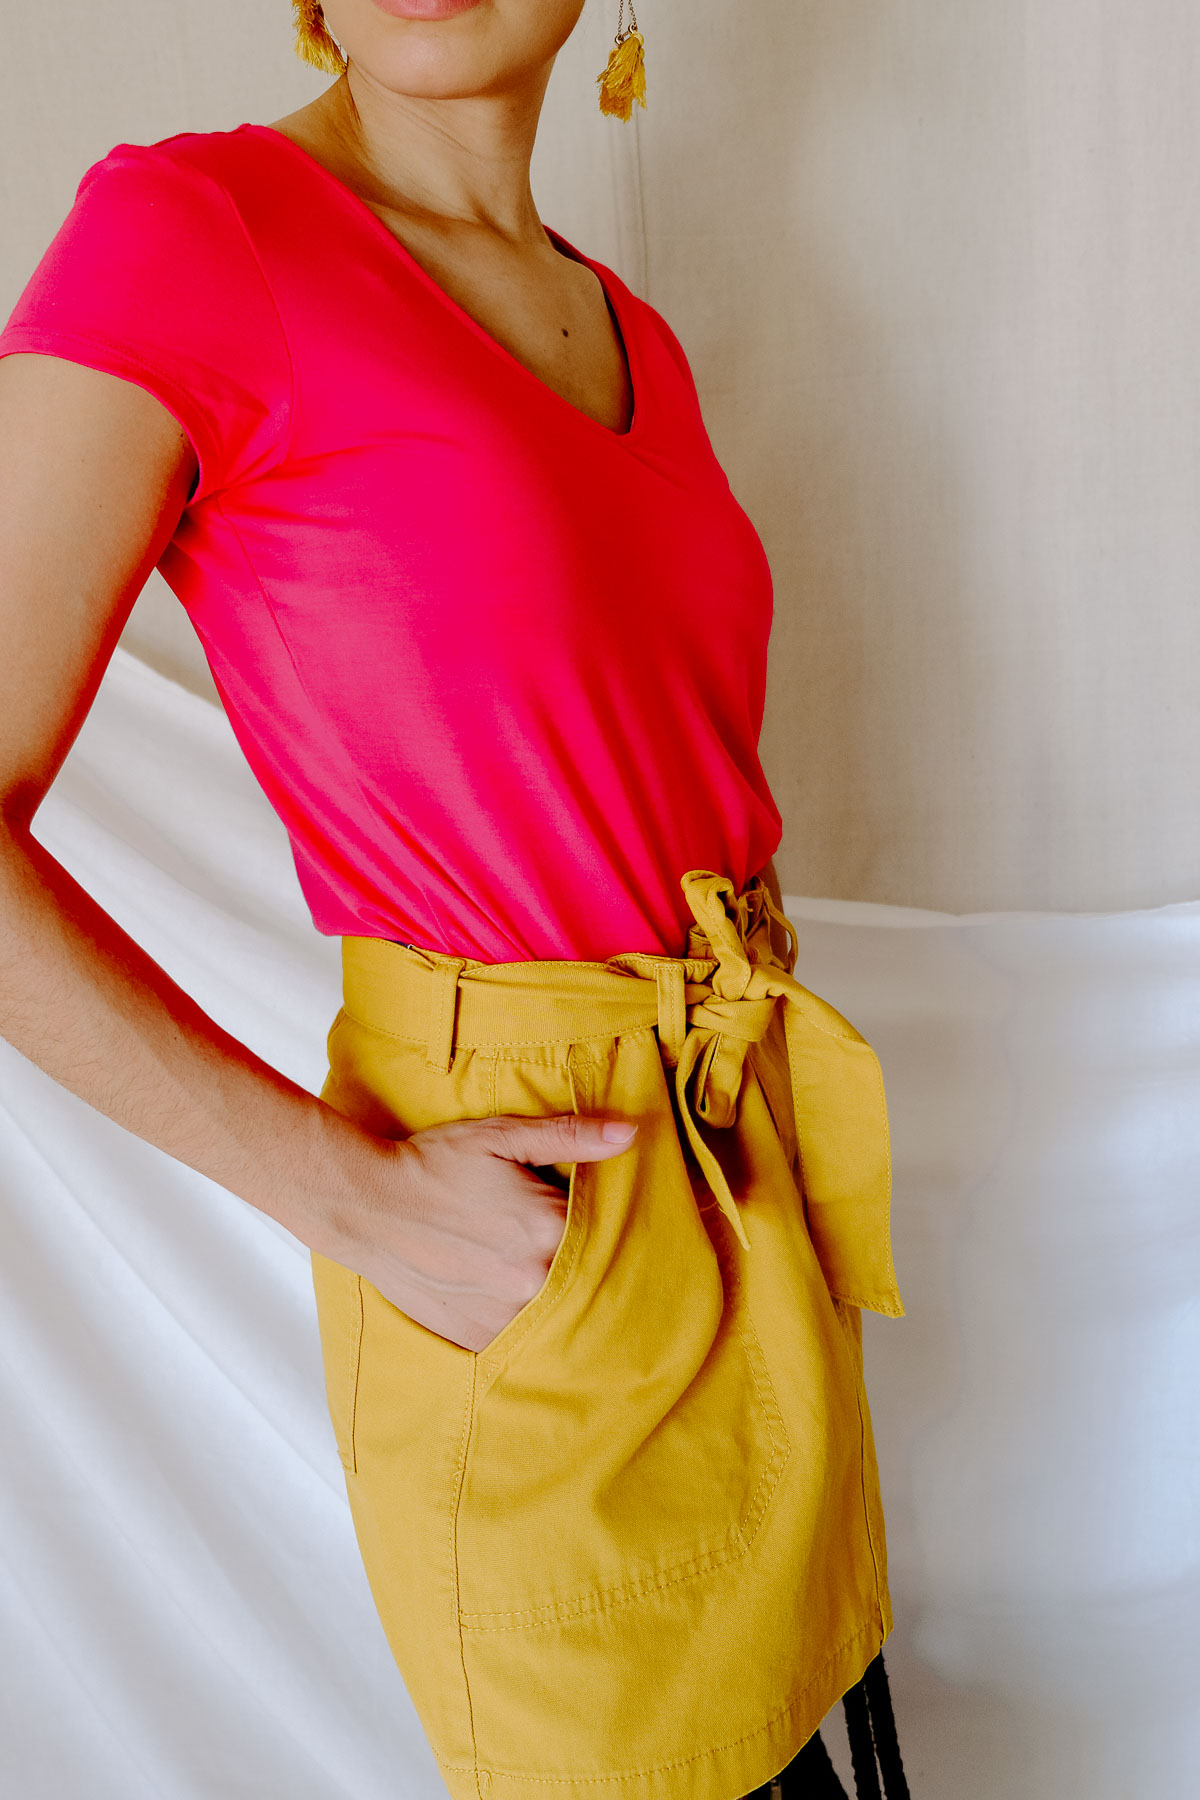 Does the warmer weather inspire you to try out some chic color combos this season? Here are 4 chic color combos to add to your spring and summer outfits!